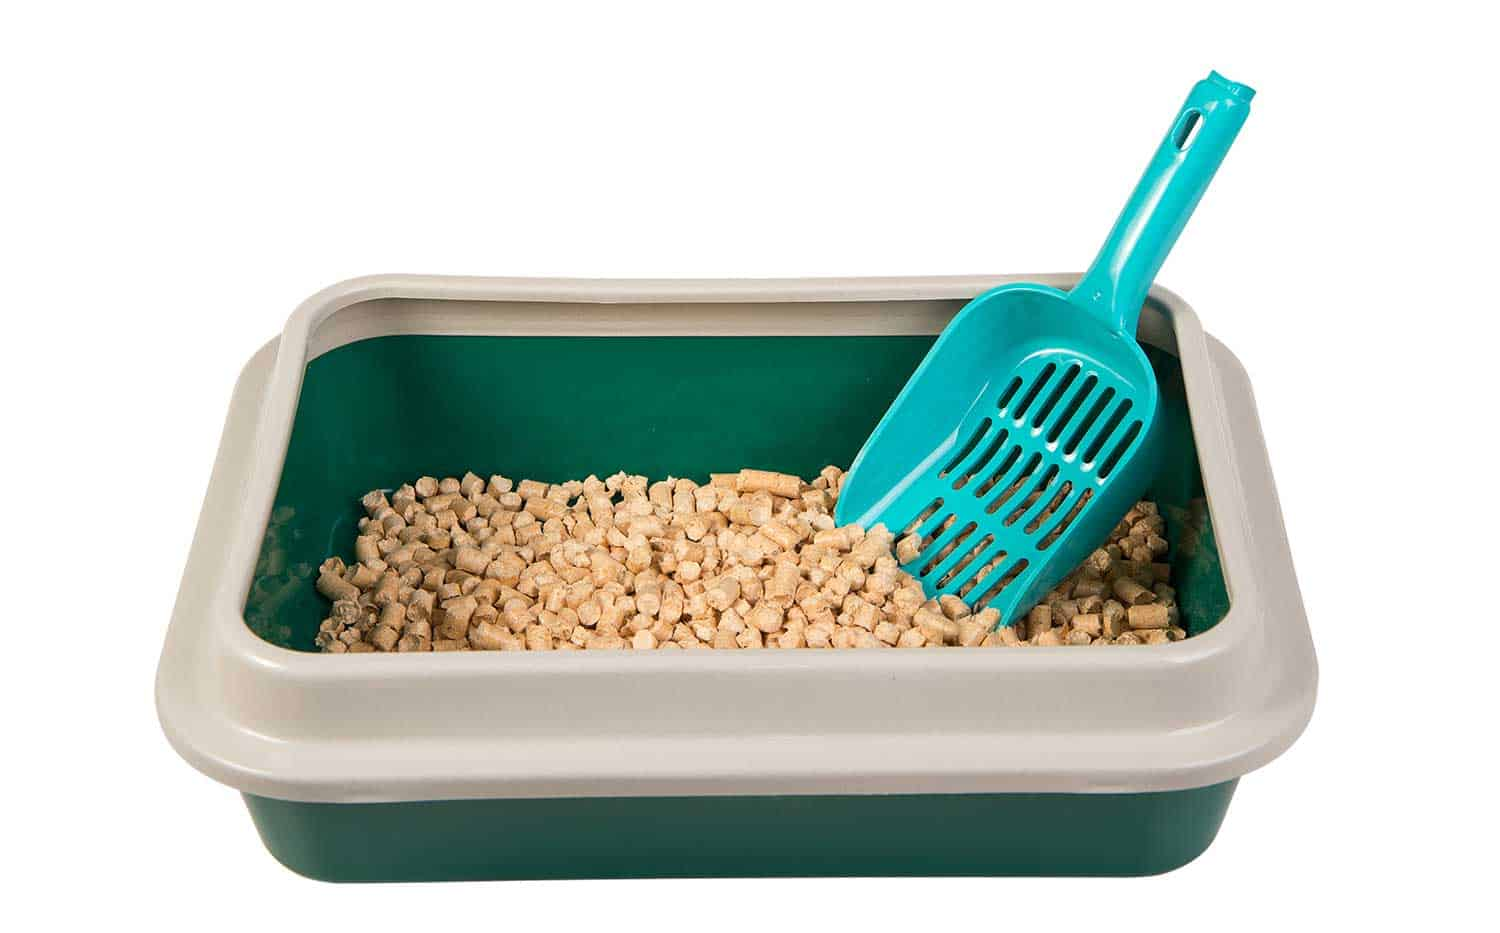 Green toilet tray for cat with wood pellets and scoop isolated on white